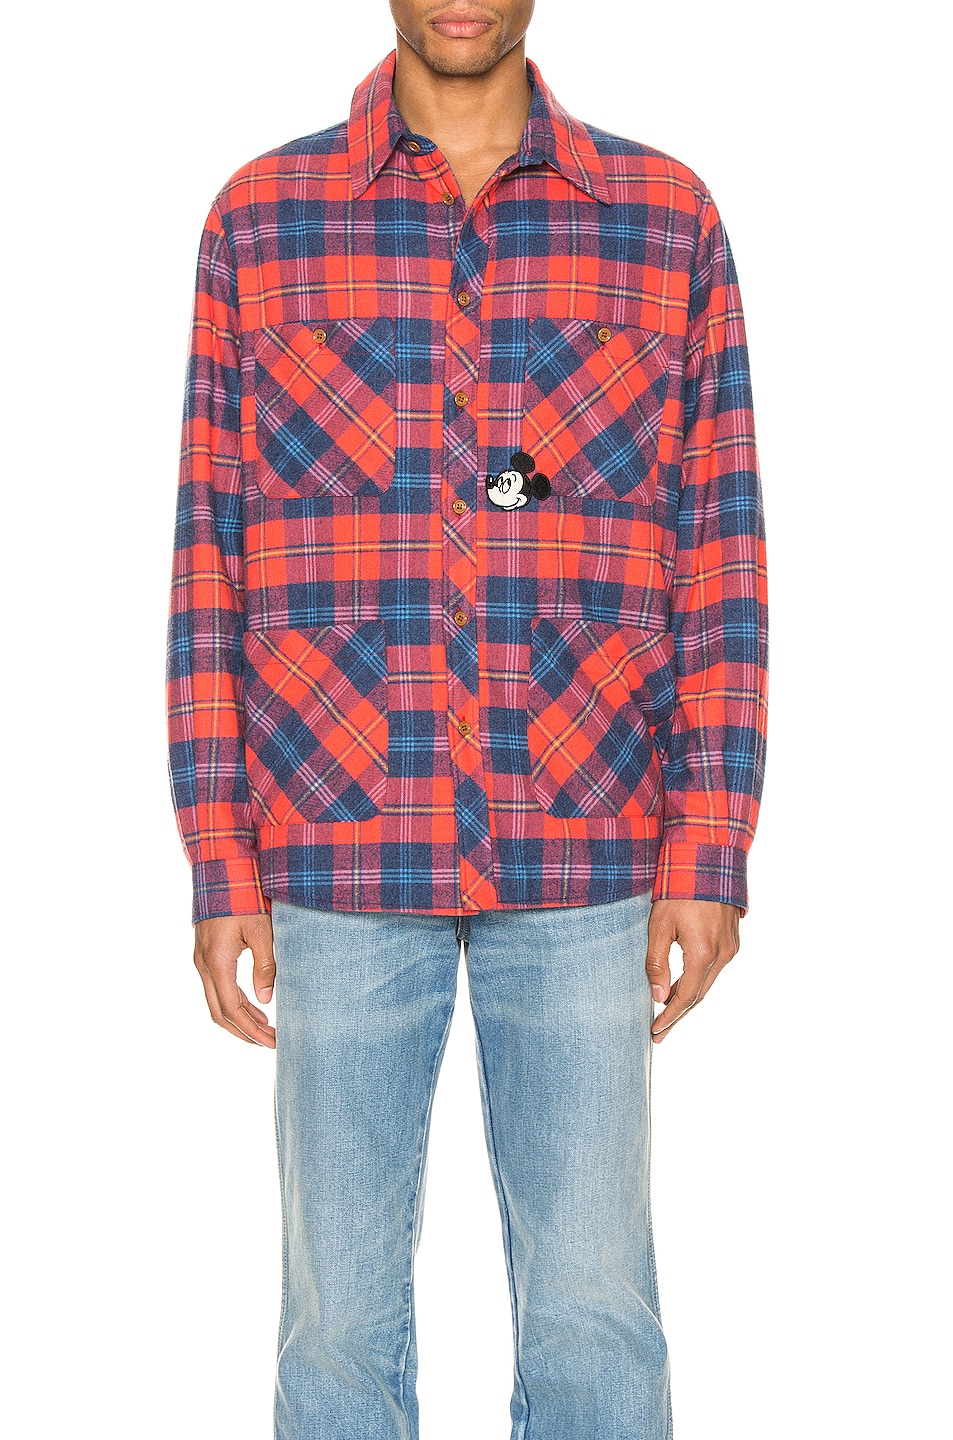 Image 1 of Gucci x Disney Cotton Shirt Shirt in Red & Blue